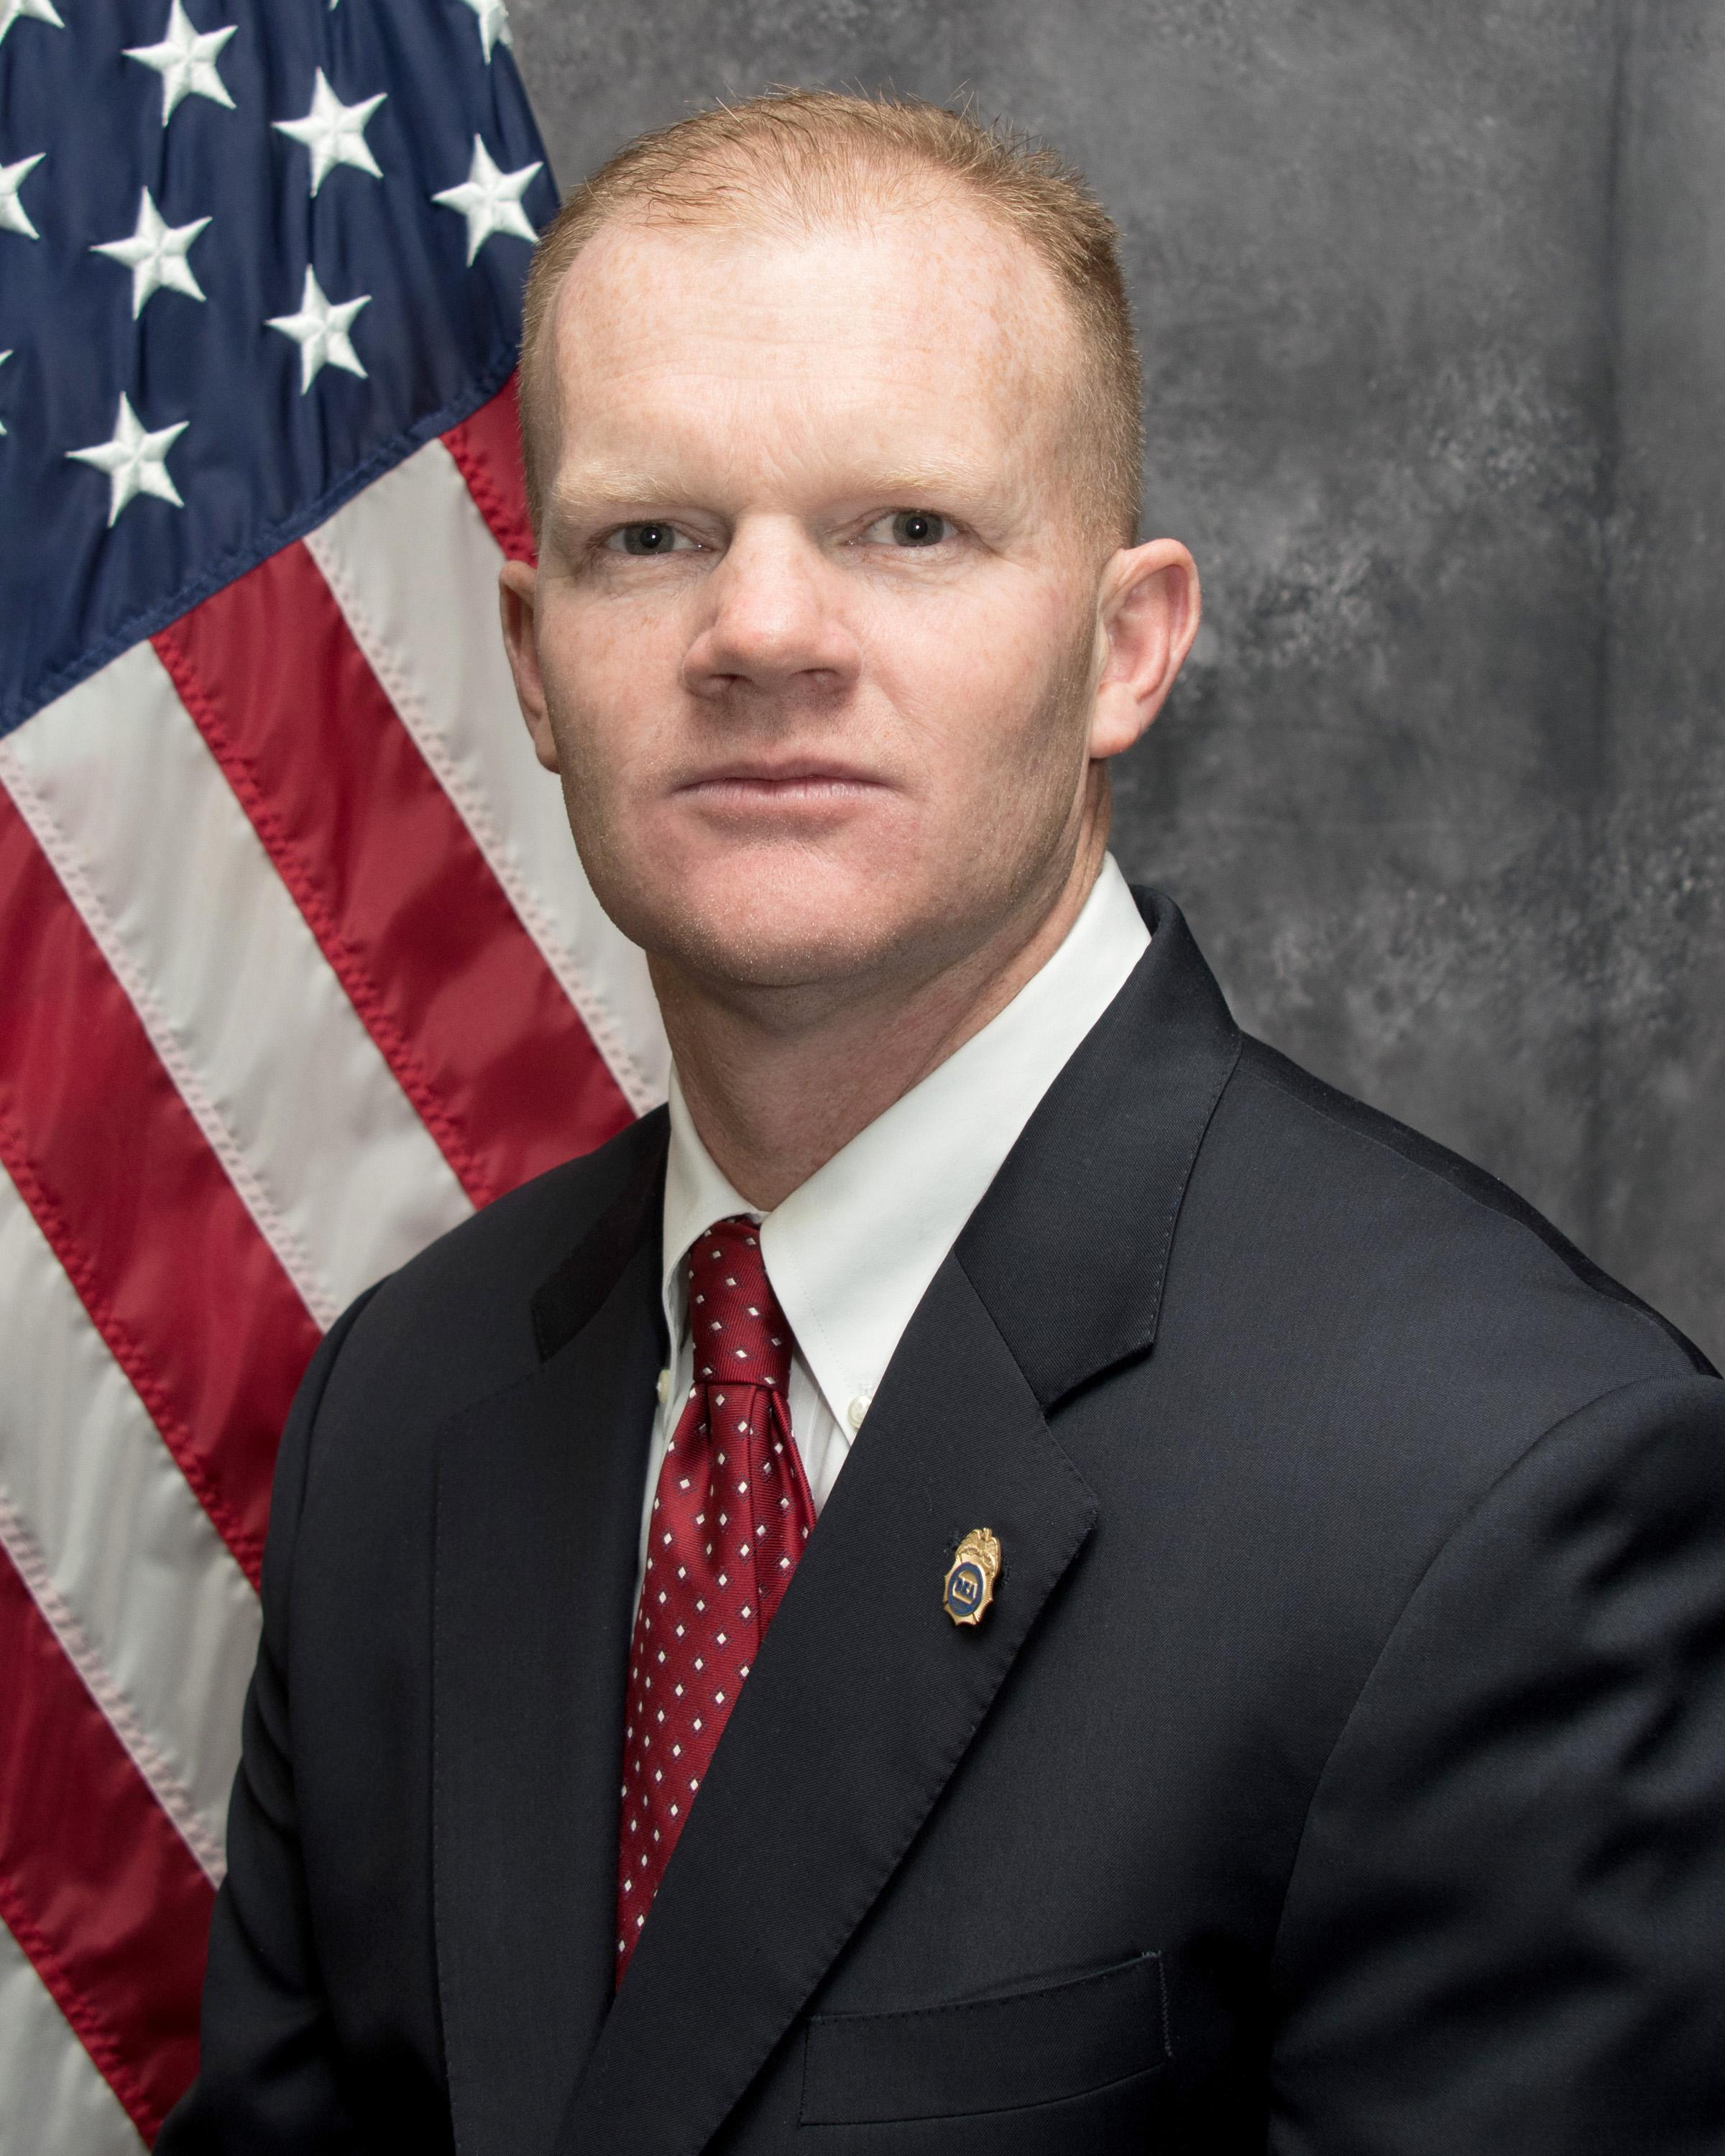 William T. McDermott Special Agent in Charge